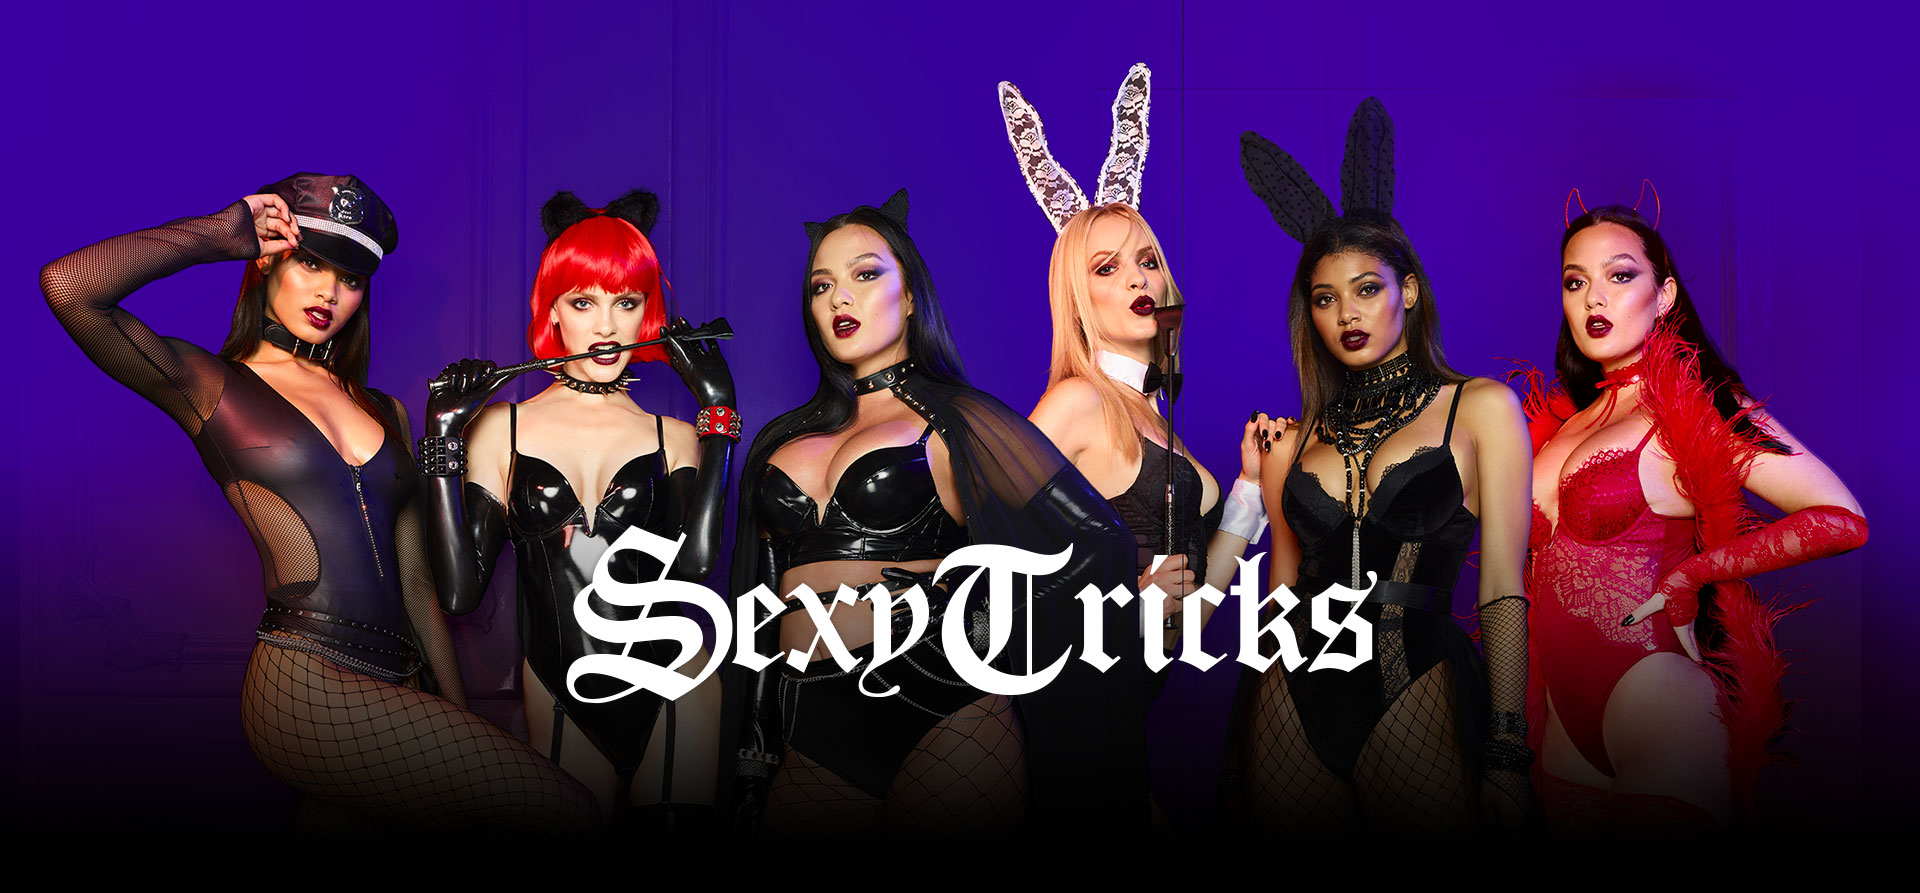 Sexy Tricks. Coming Soon. Free shipping on orders of $75. Get it by October 26. Order by noon est. Oct 21 standard shipping. October 22 express shipping.